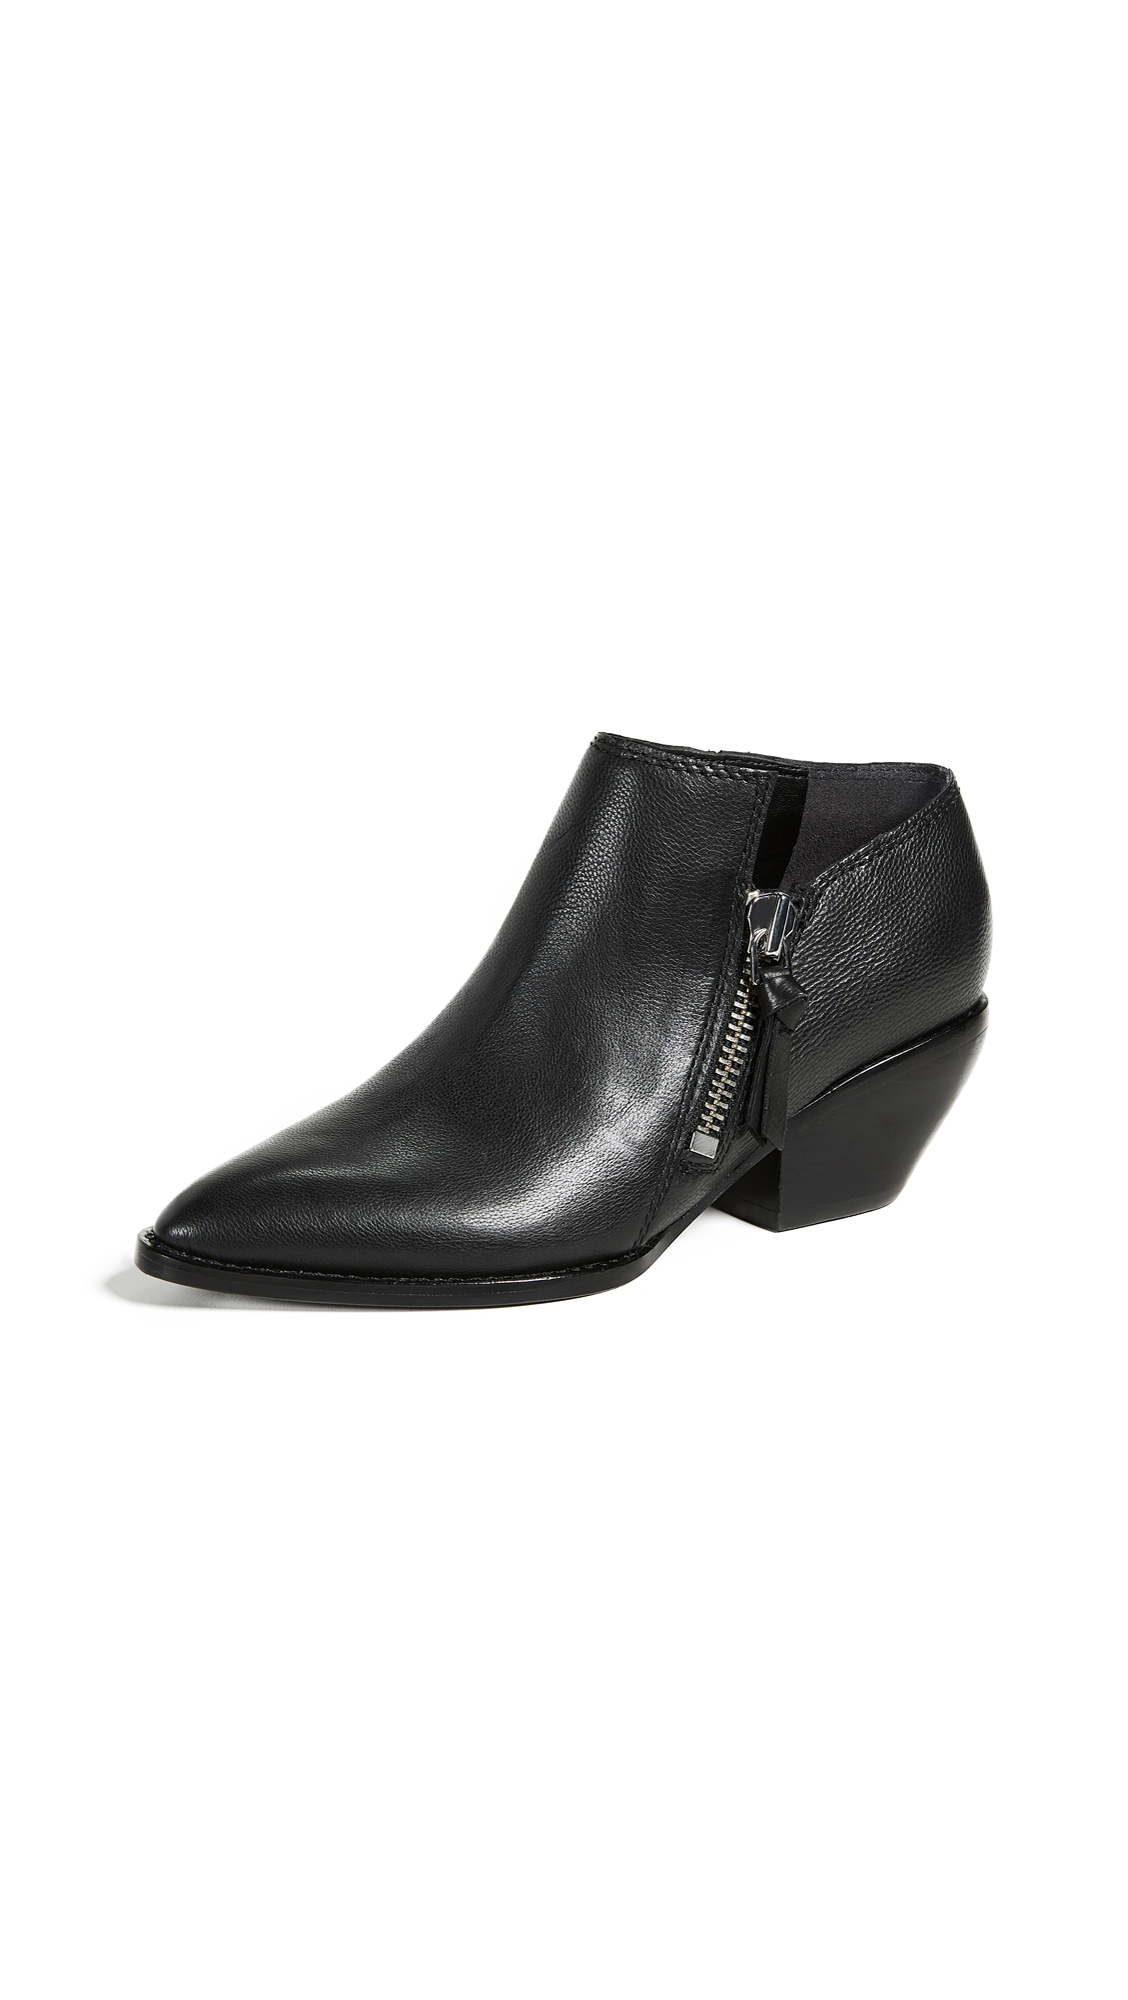 Sigerson Morrison Hannah Point Toe Booties - Black